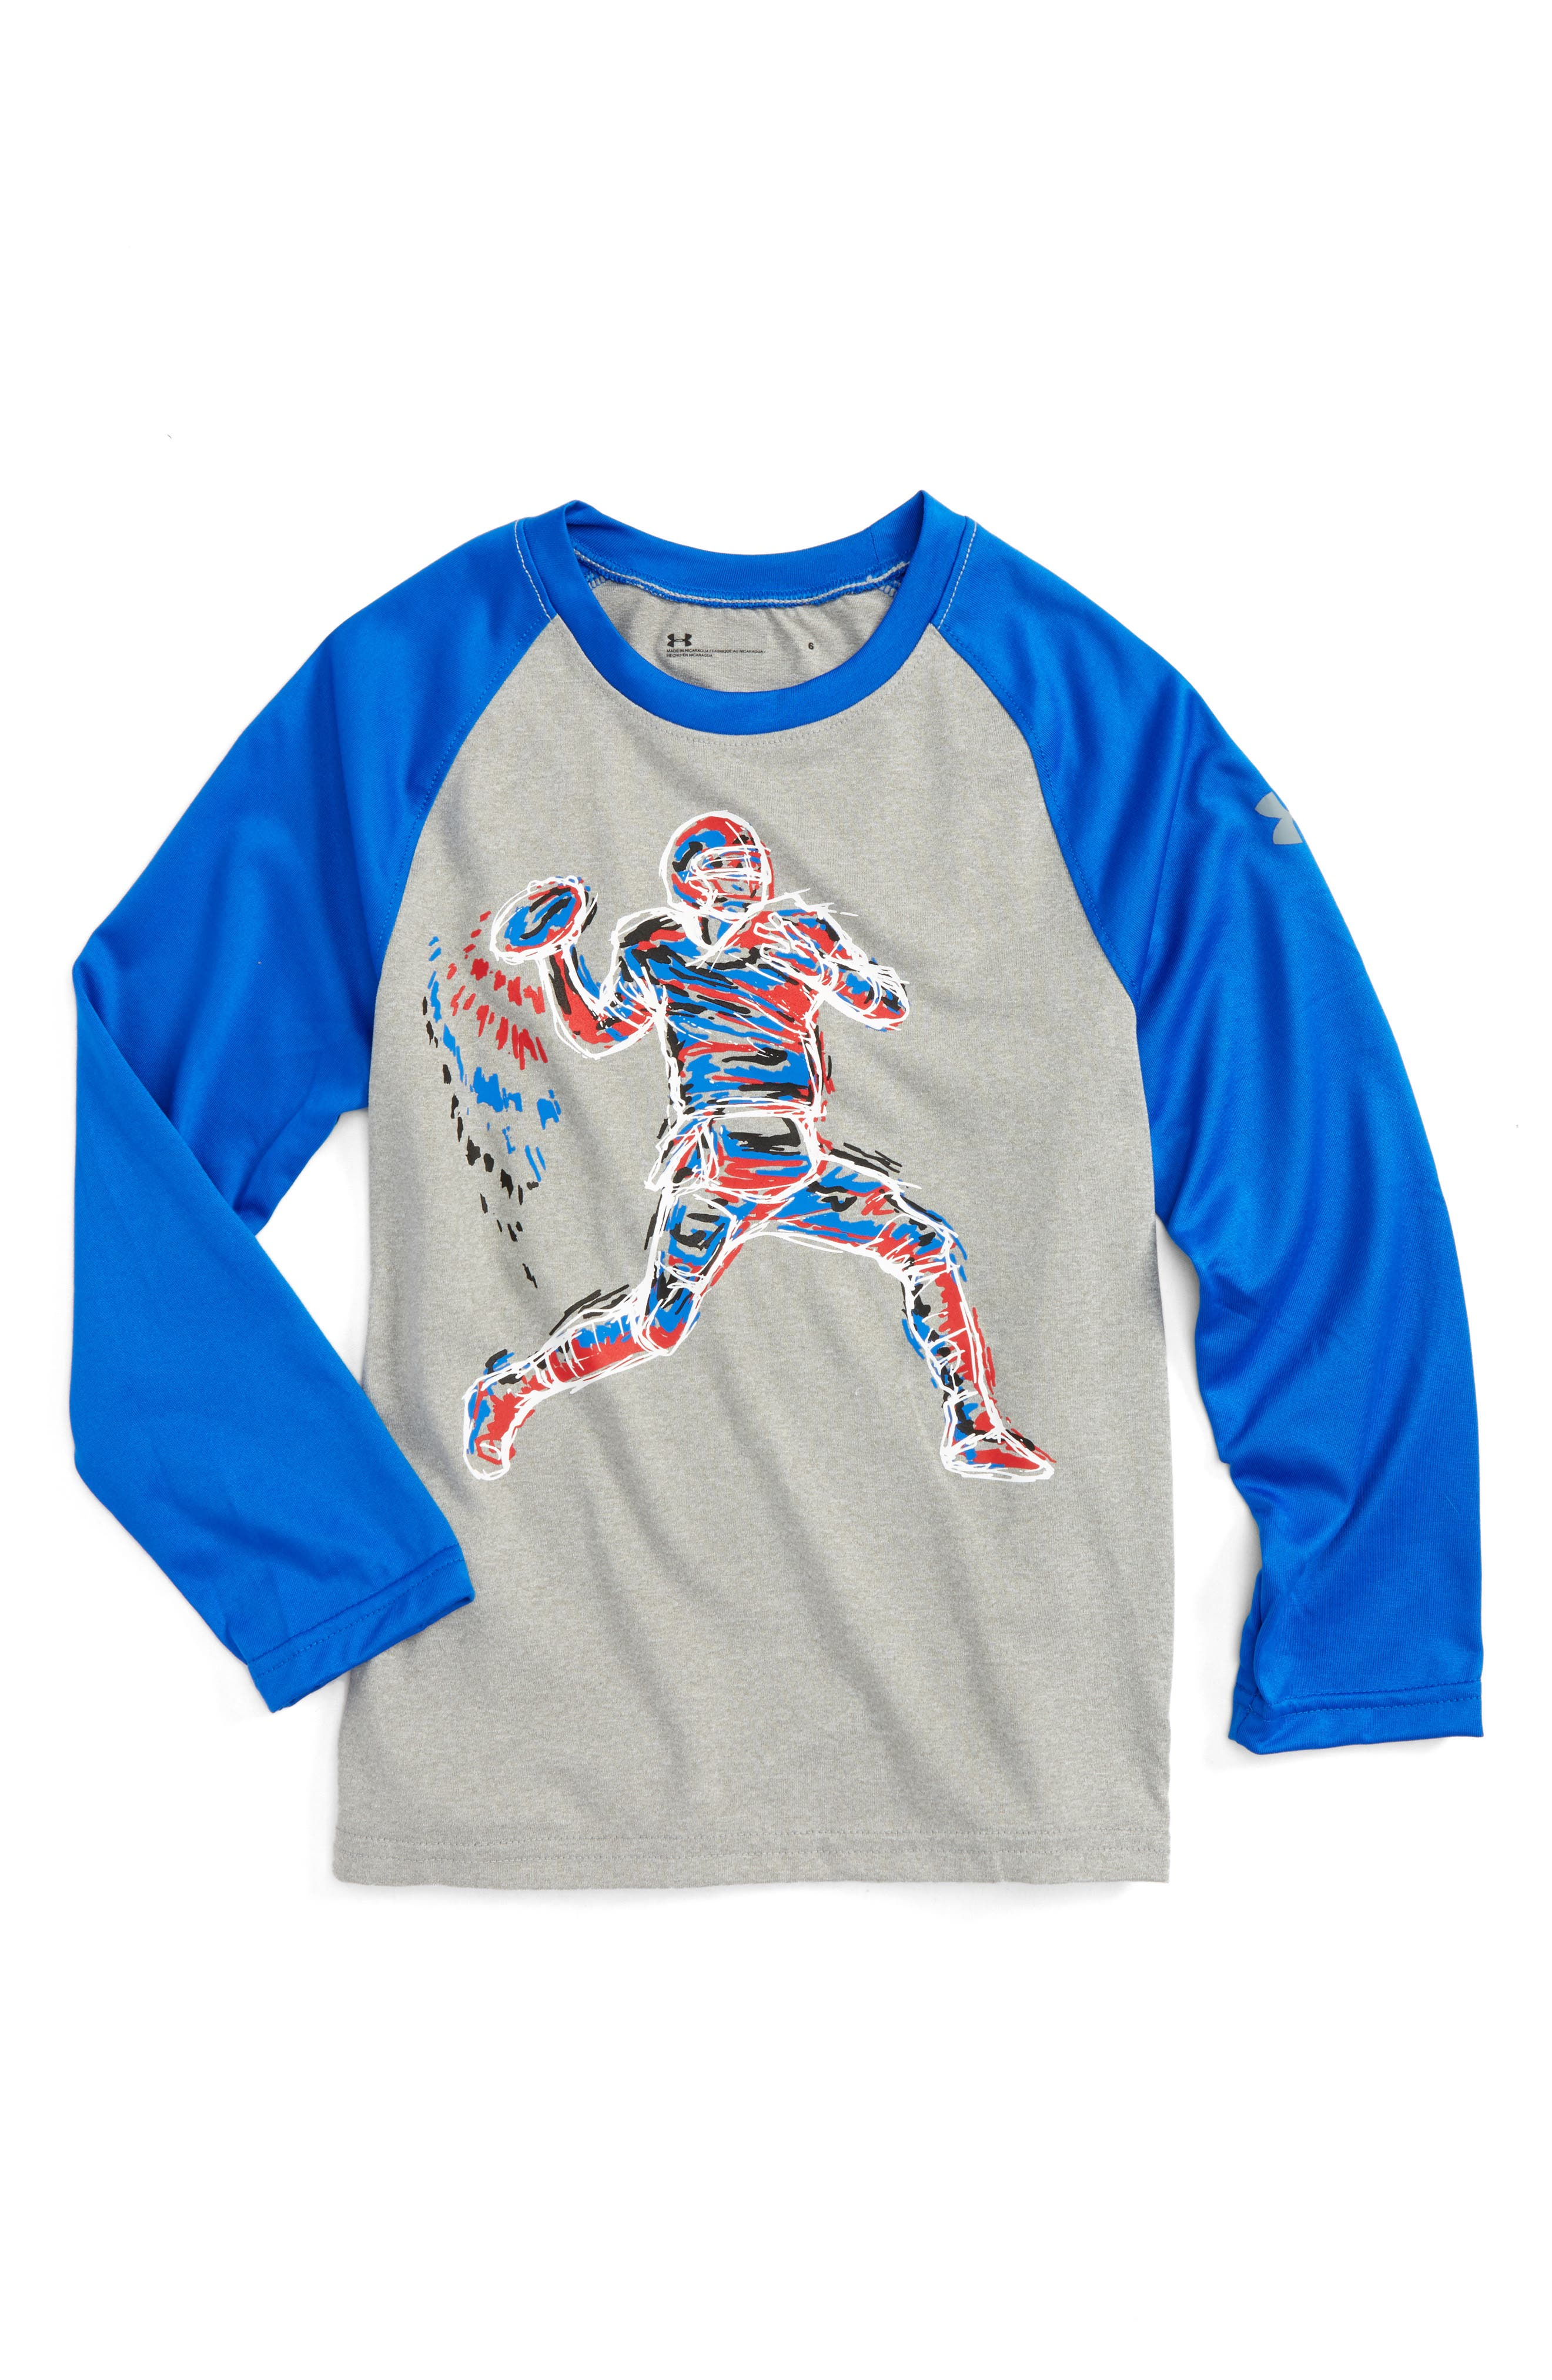 Under Armour Illuminated QB Glow in the Dark T-Shirt (Toddler Boys & Little Boys)